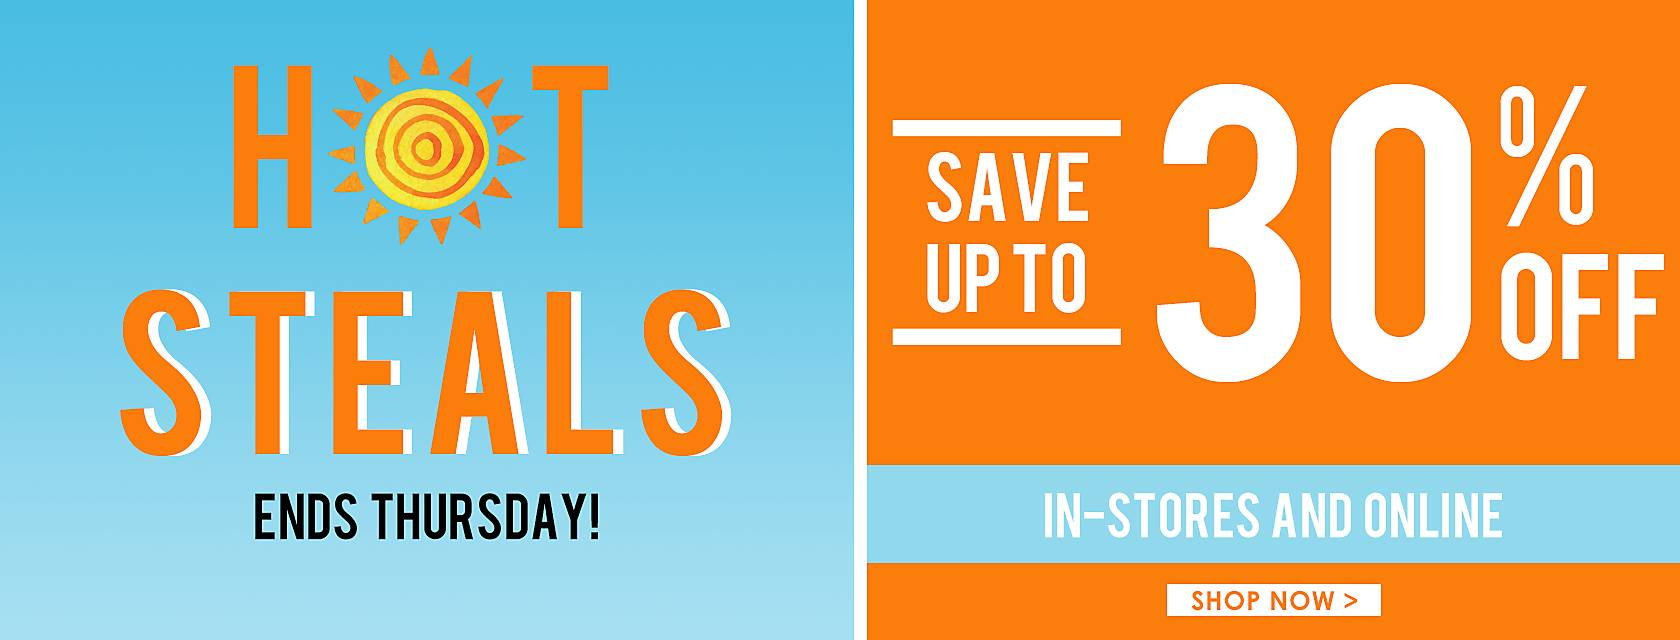 Ends Thursday!